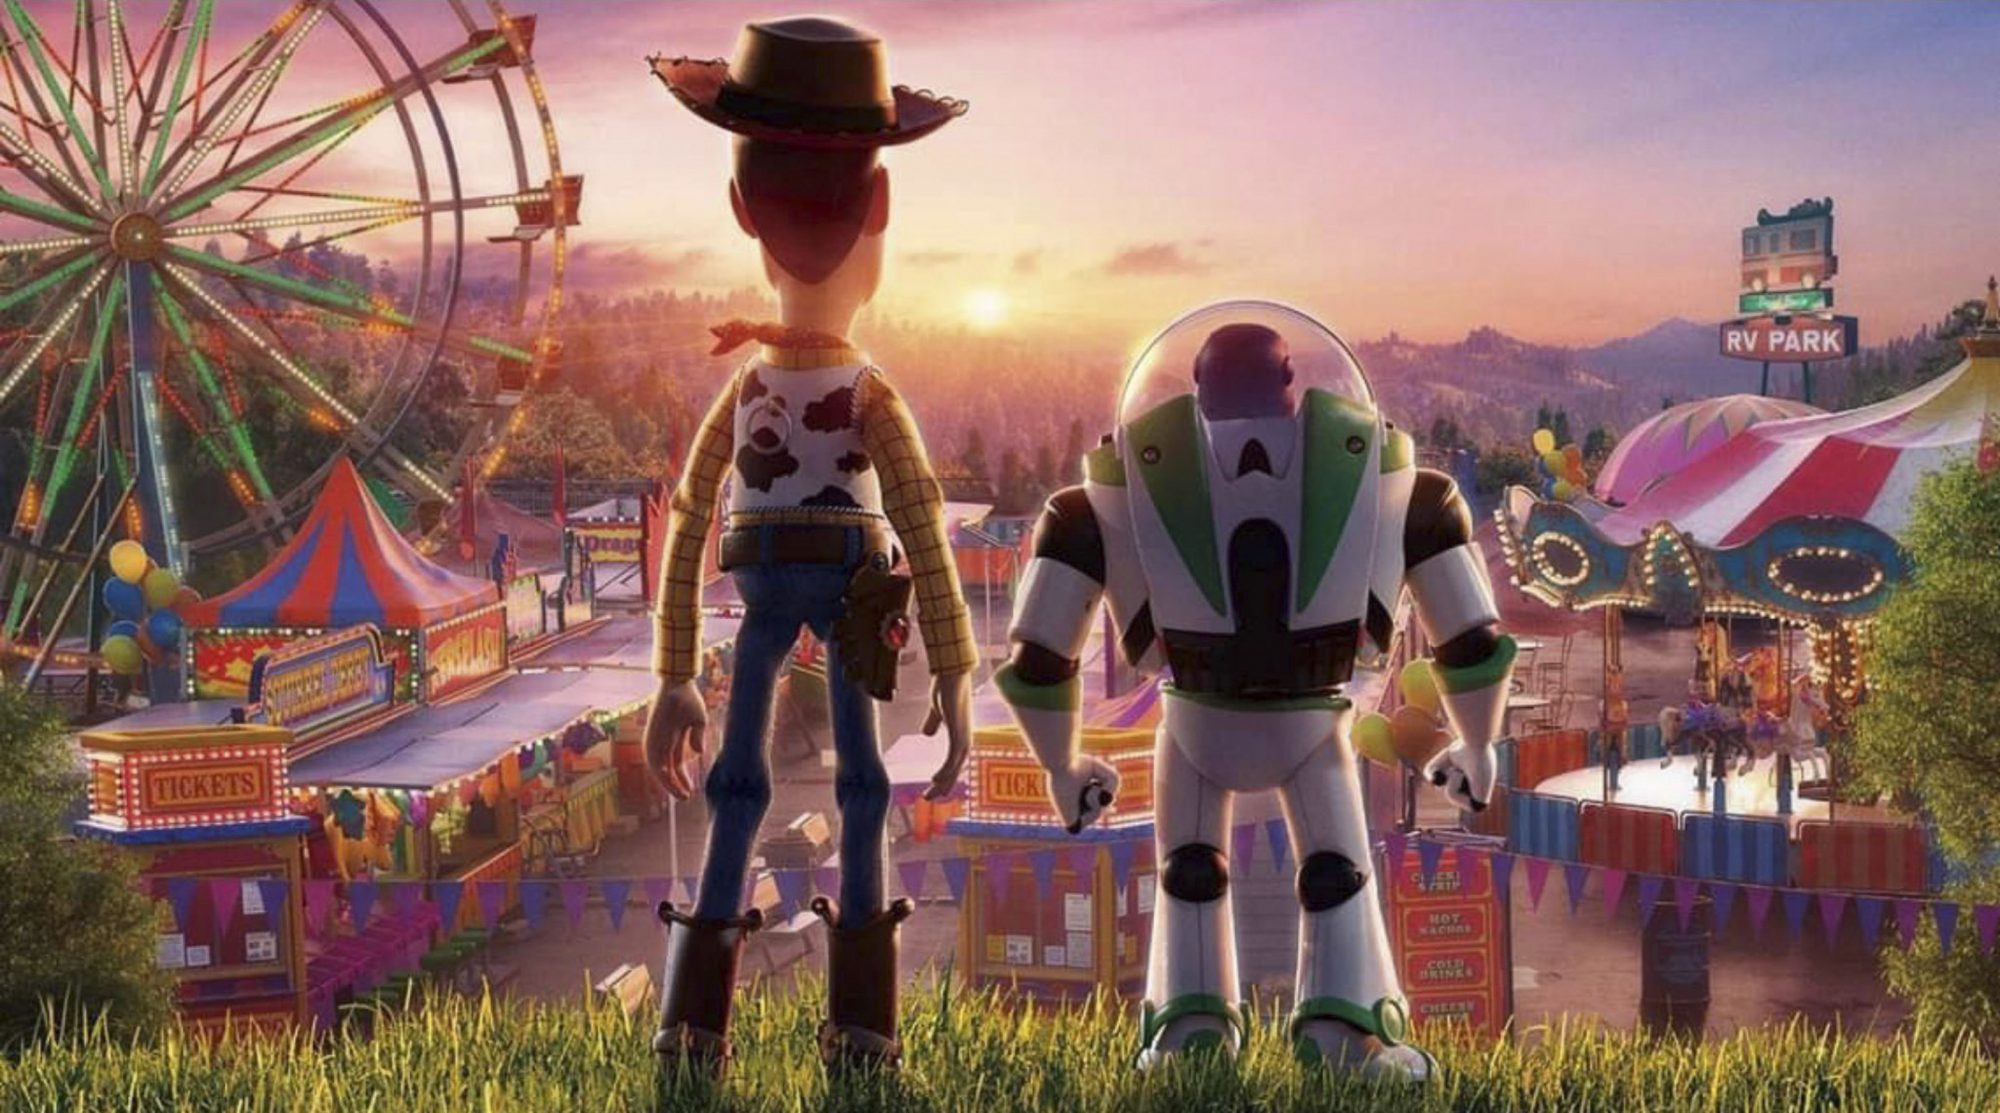 Toy Story 4 Tom Hanks as Woody and Tim Allen as Buzz Lightyear https://twitter.com/CooleyUrFaceOff/status/1141948240763375616 CR: Disney/Pixar